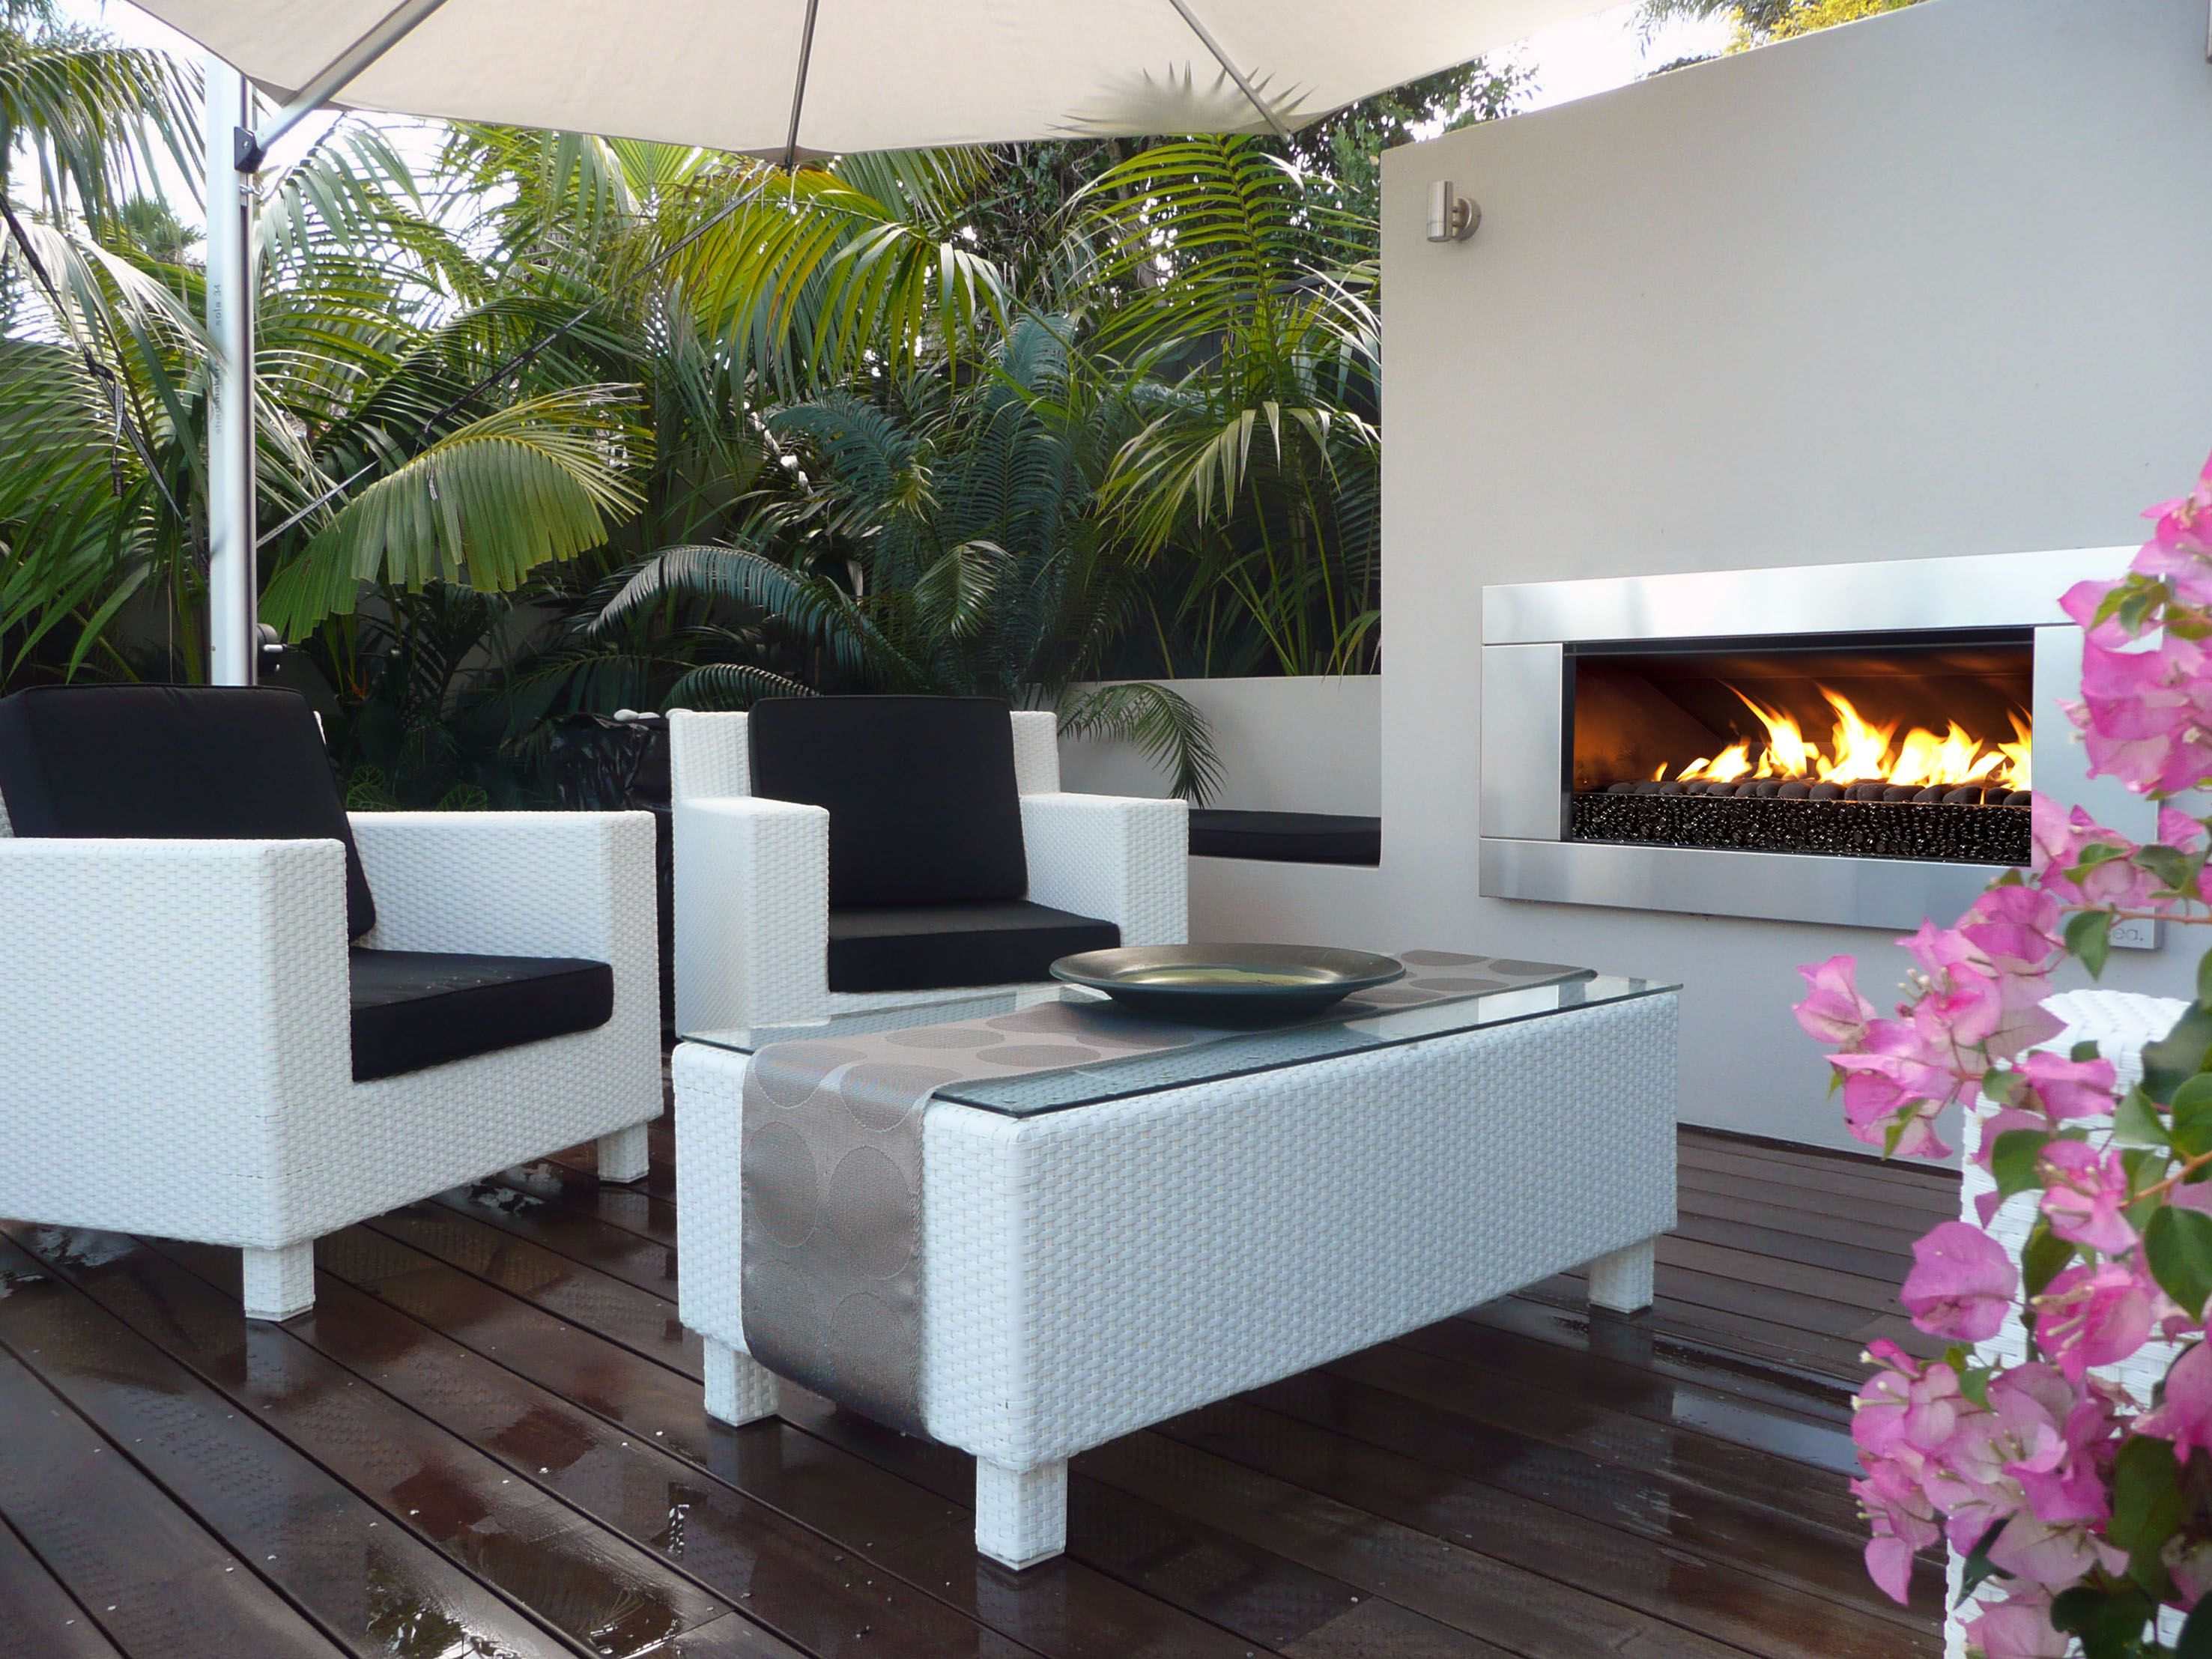 b3d606a3d2b28685143b4d7b5ce56af0 Top Result 50 Awesome Steel Outdoor Fireplace Gallery 2018 Hiw6